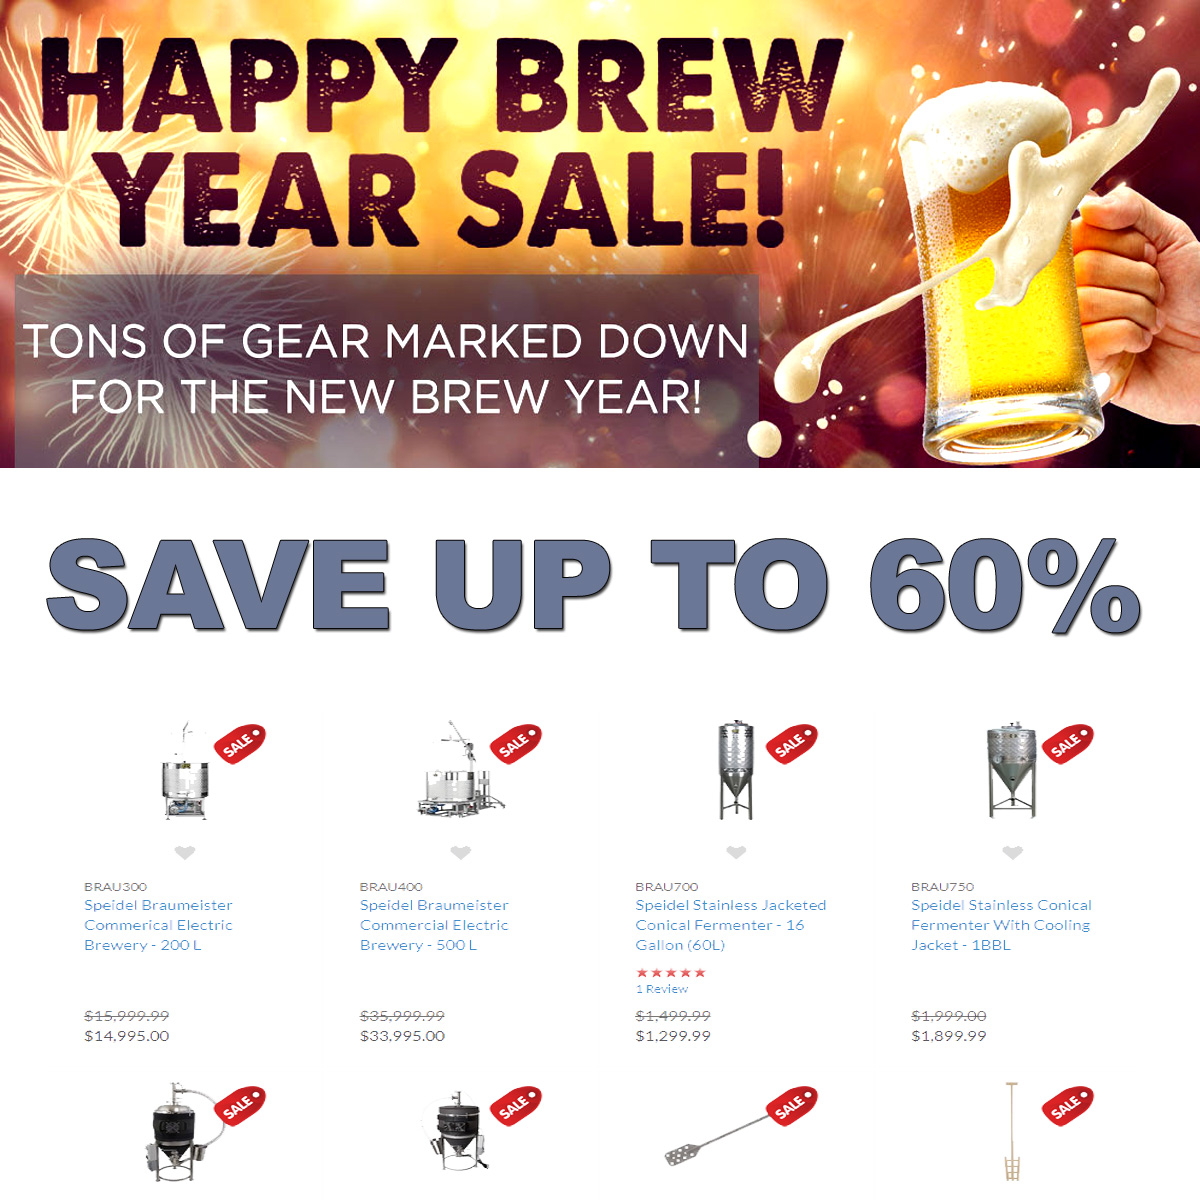 MoreBeer Save Up To 60% On Poplular Home Brewing Items During The More Beer Happy Brew Year Sale! Coupon Code